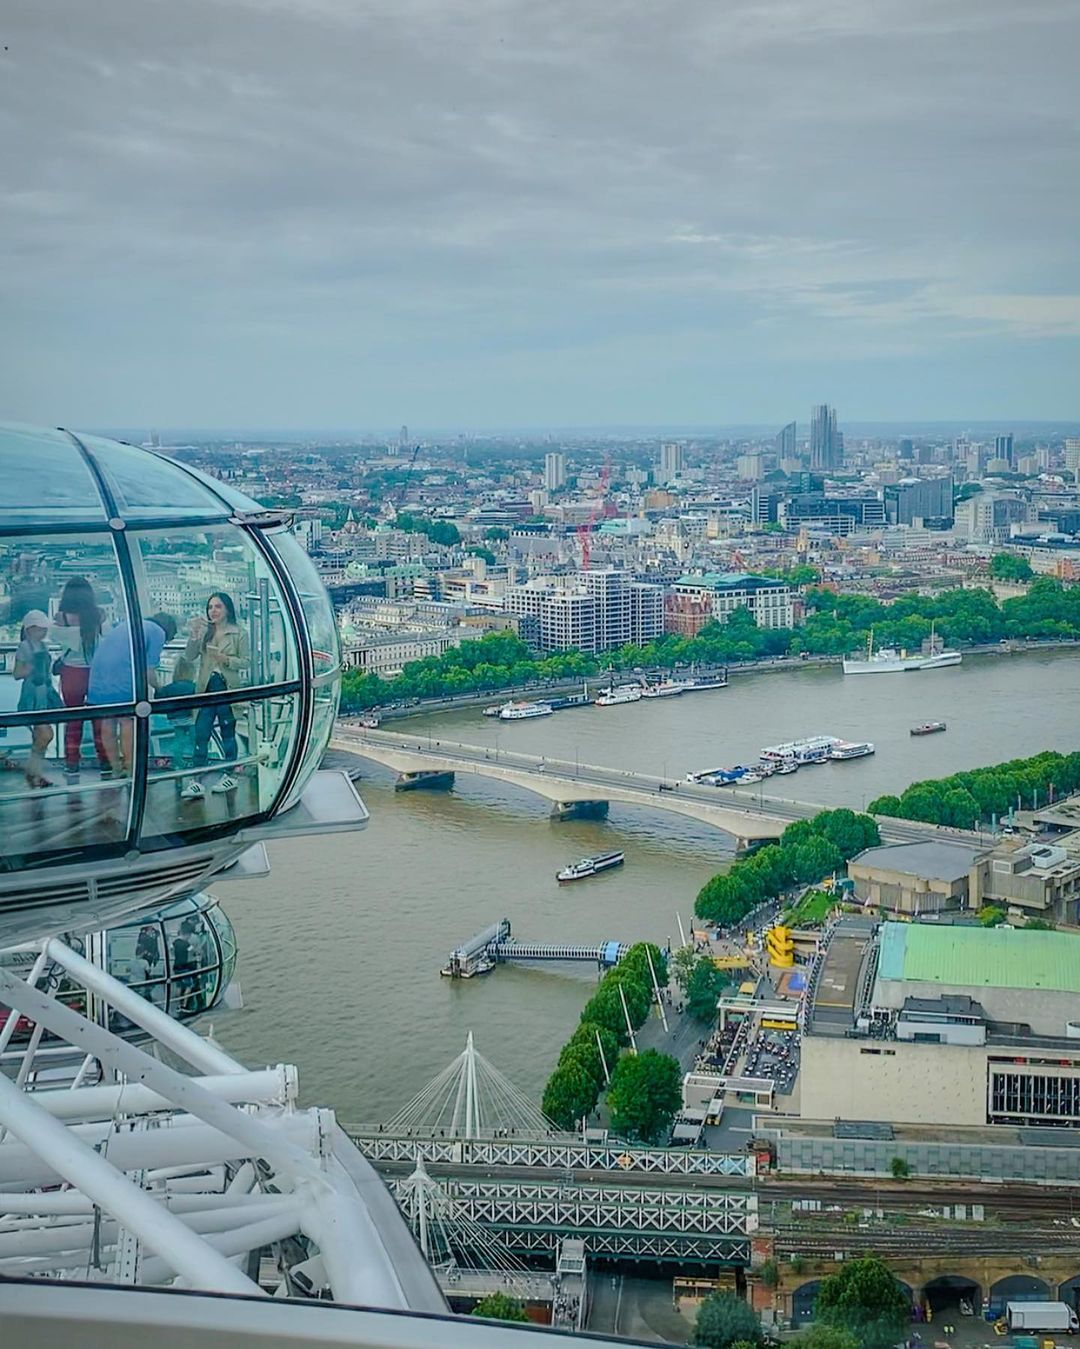 Melihat pemandangan london eye